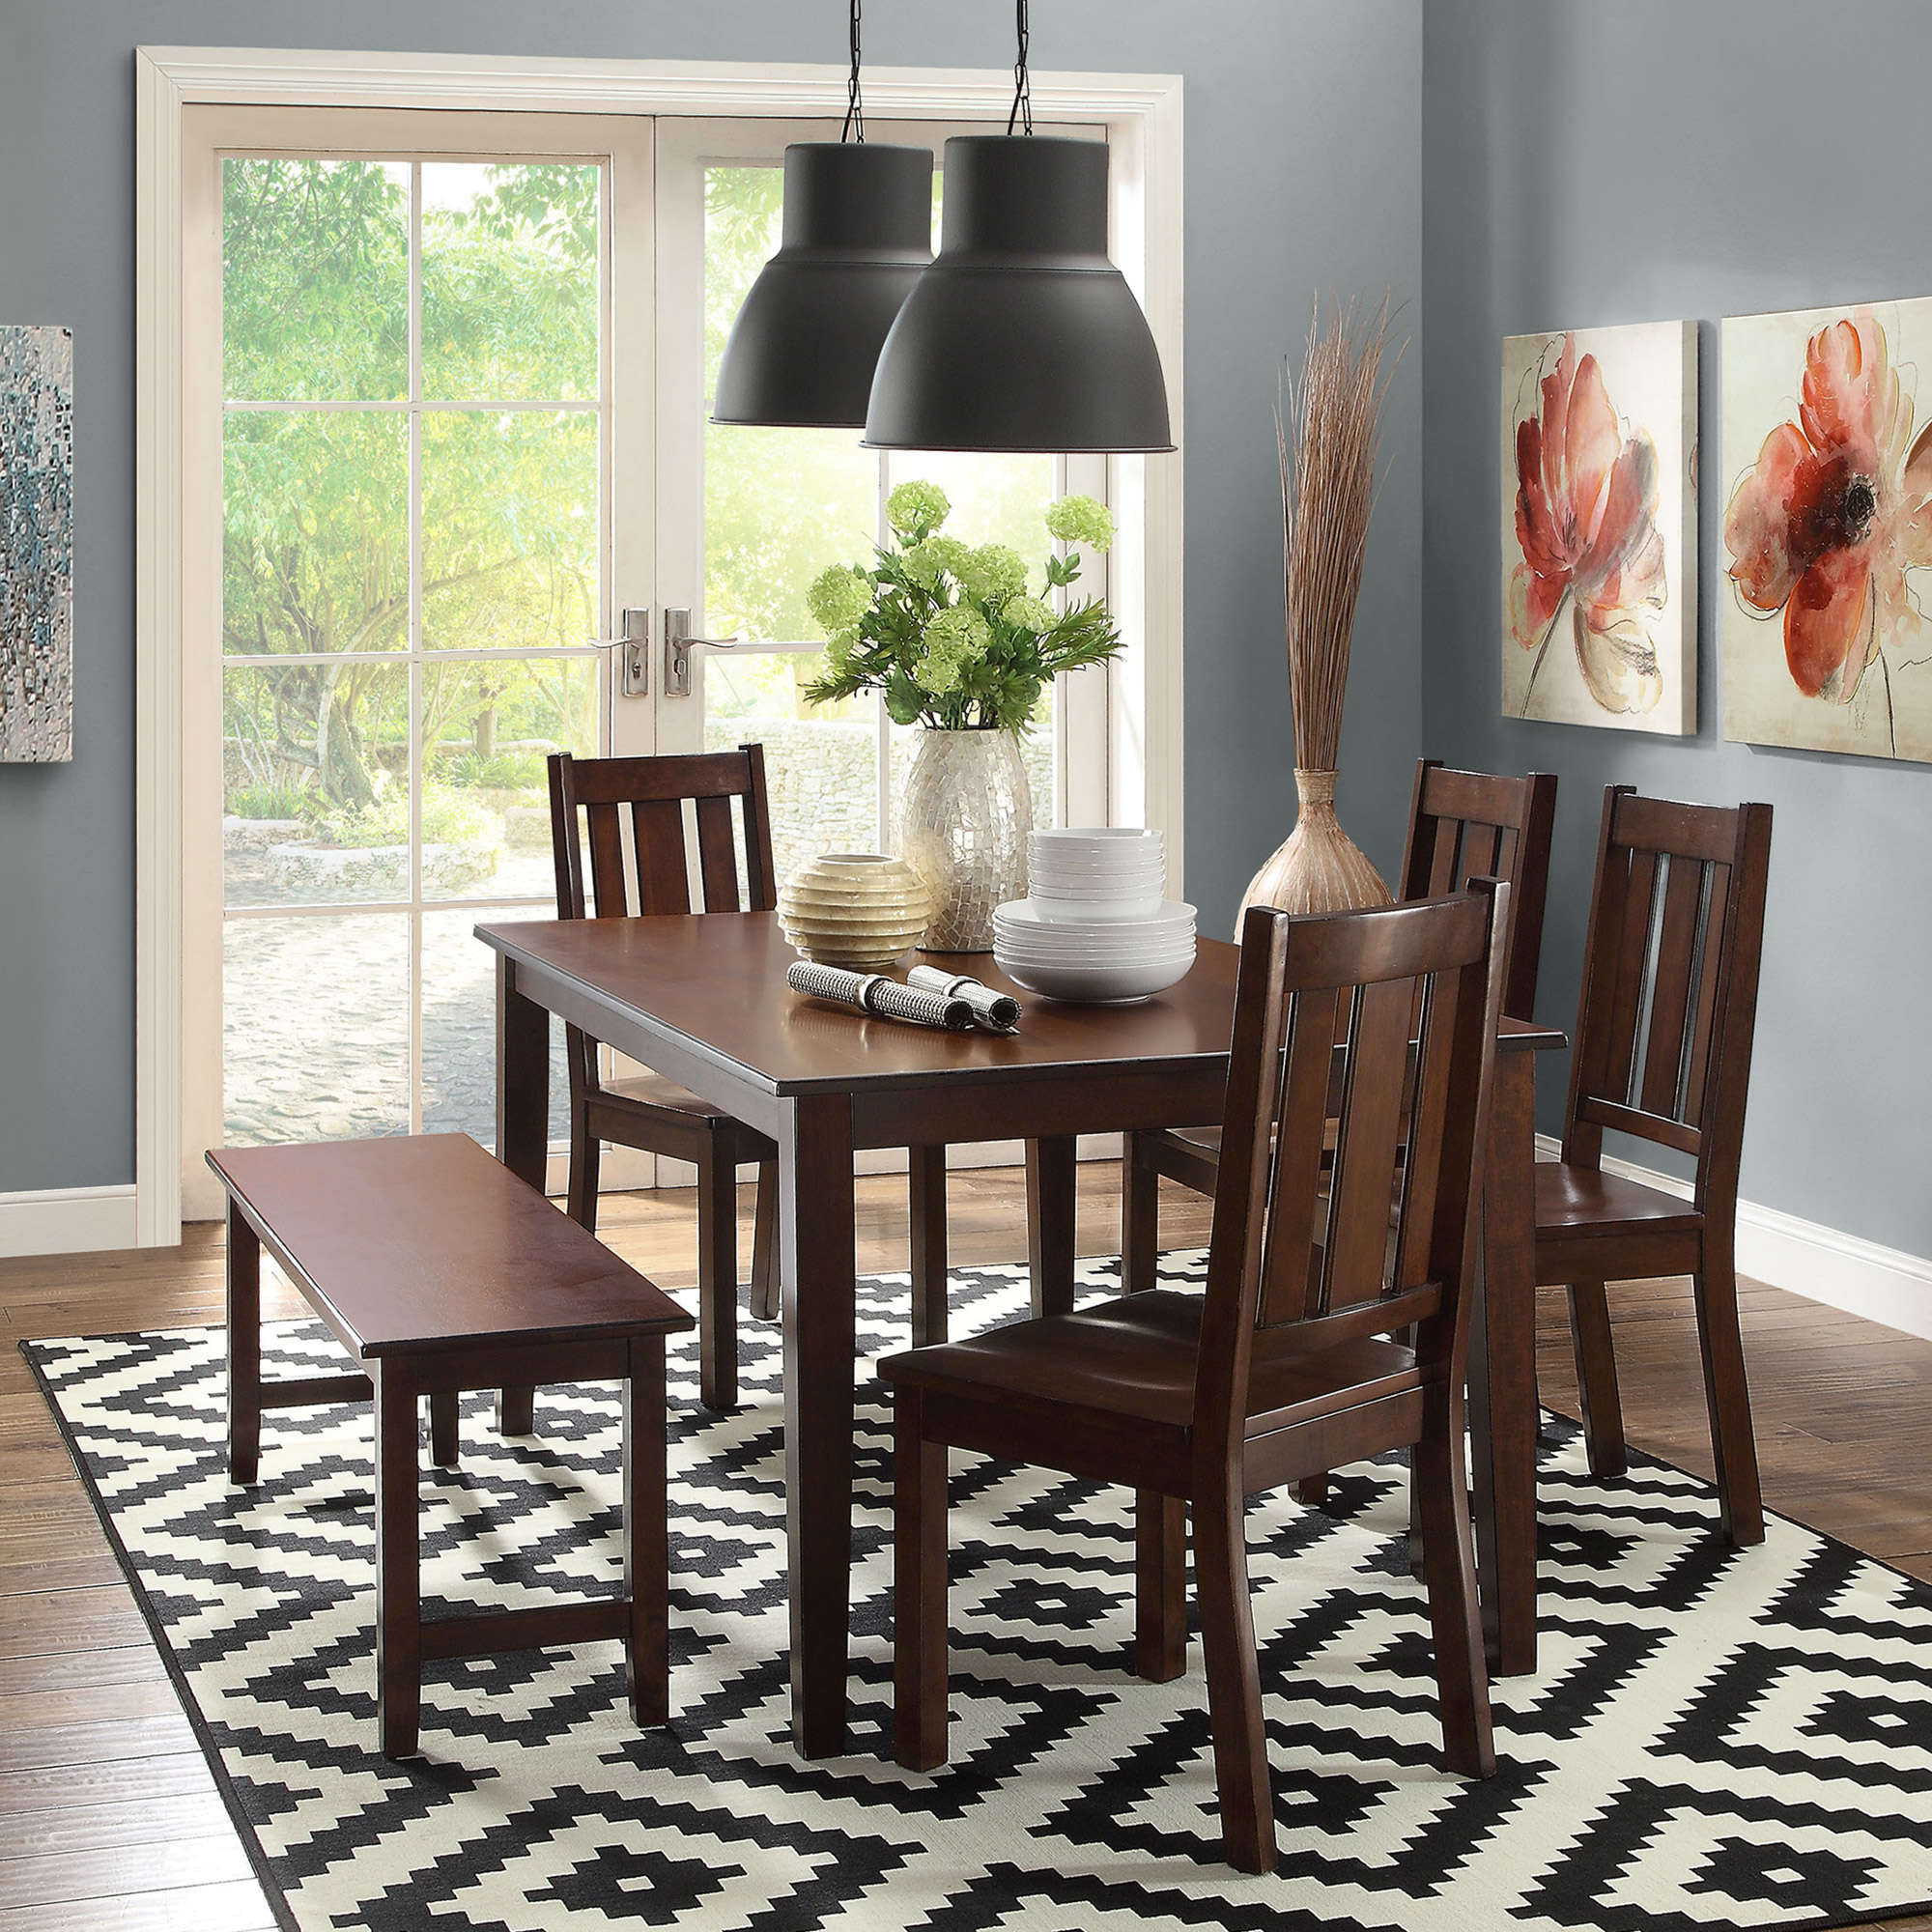 better homes and gardens bankston dining chairs set mocha ave six piece fabric chair accent table vintage swedish furniture barn door closet doors modern armchair marble top